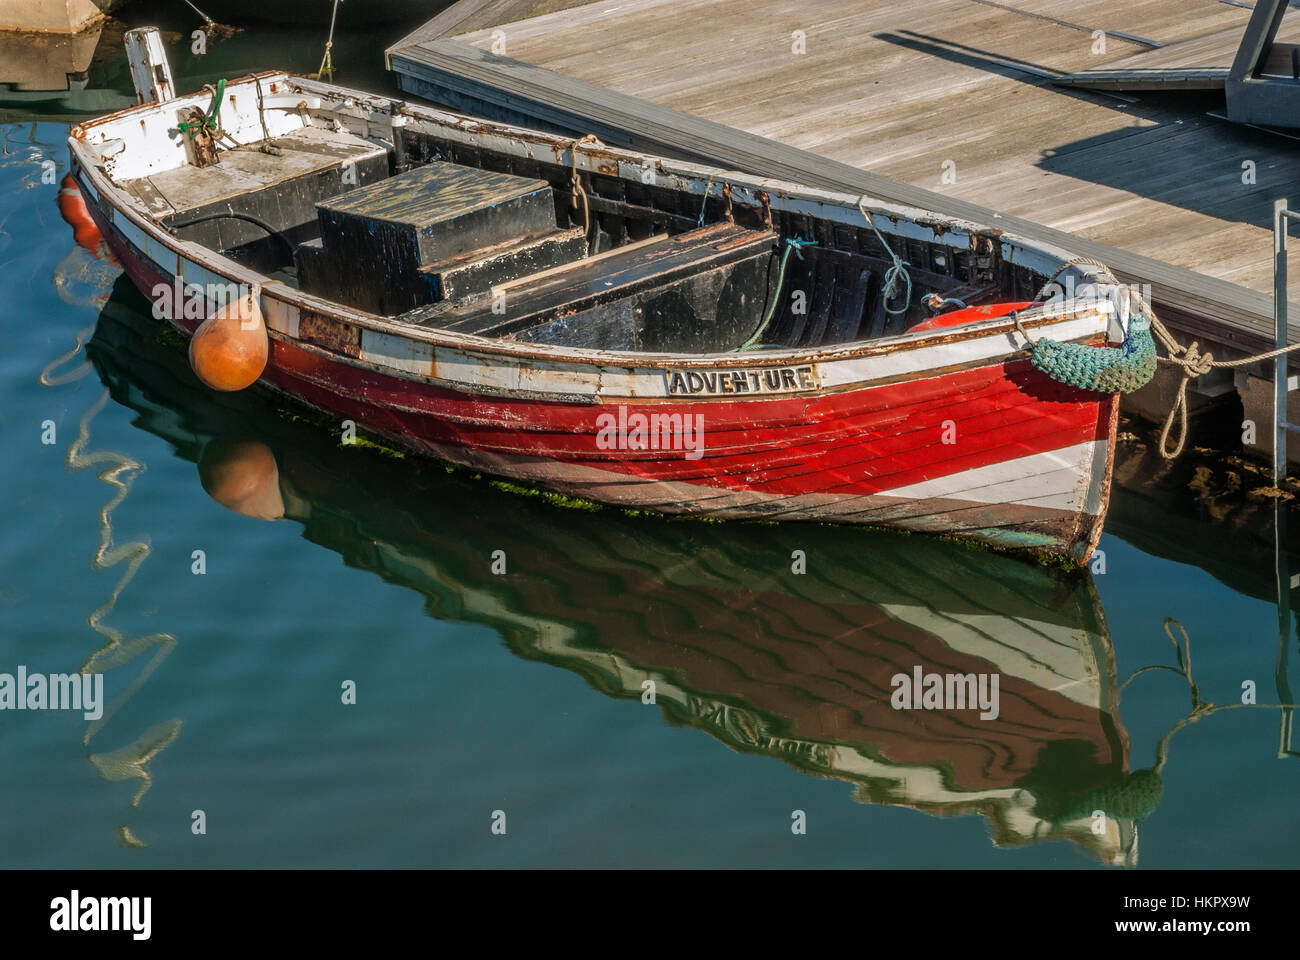 Small red Fishing Boat, named 'Adventure' in the Harbour of Scarborough on the North Sea coast of North - Stock Image